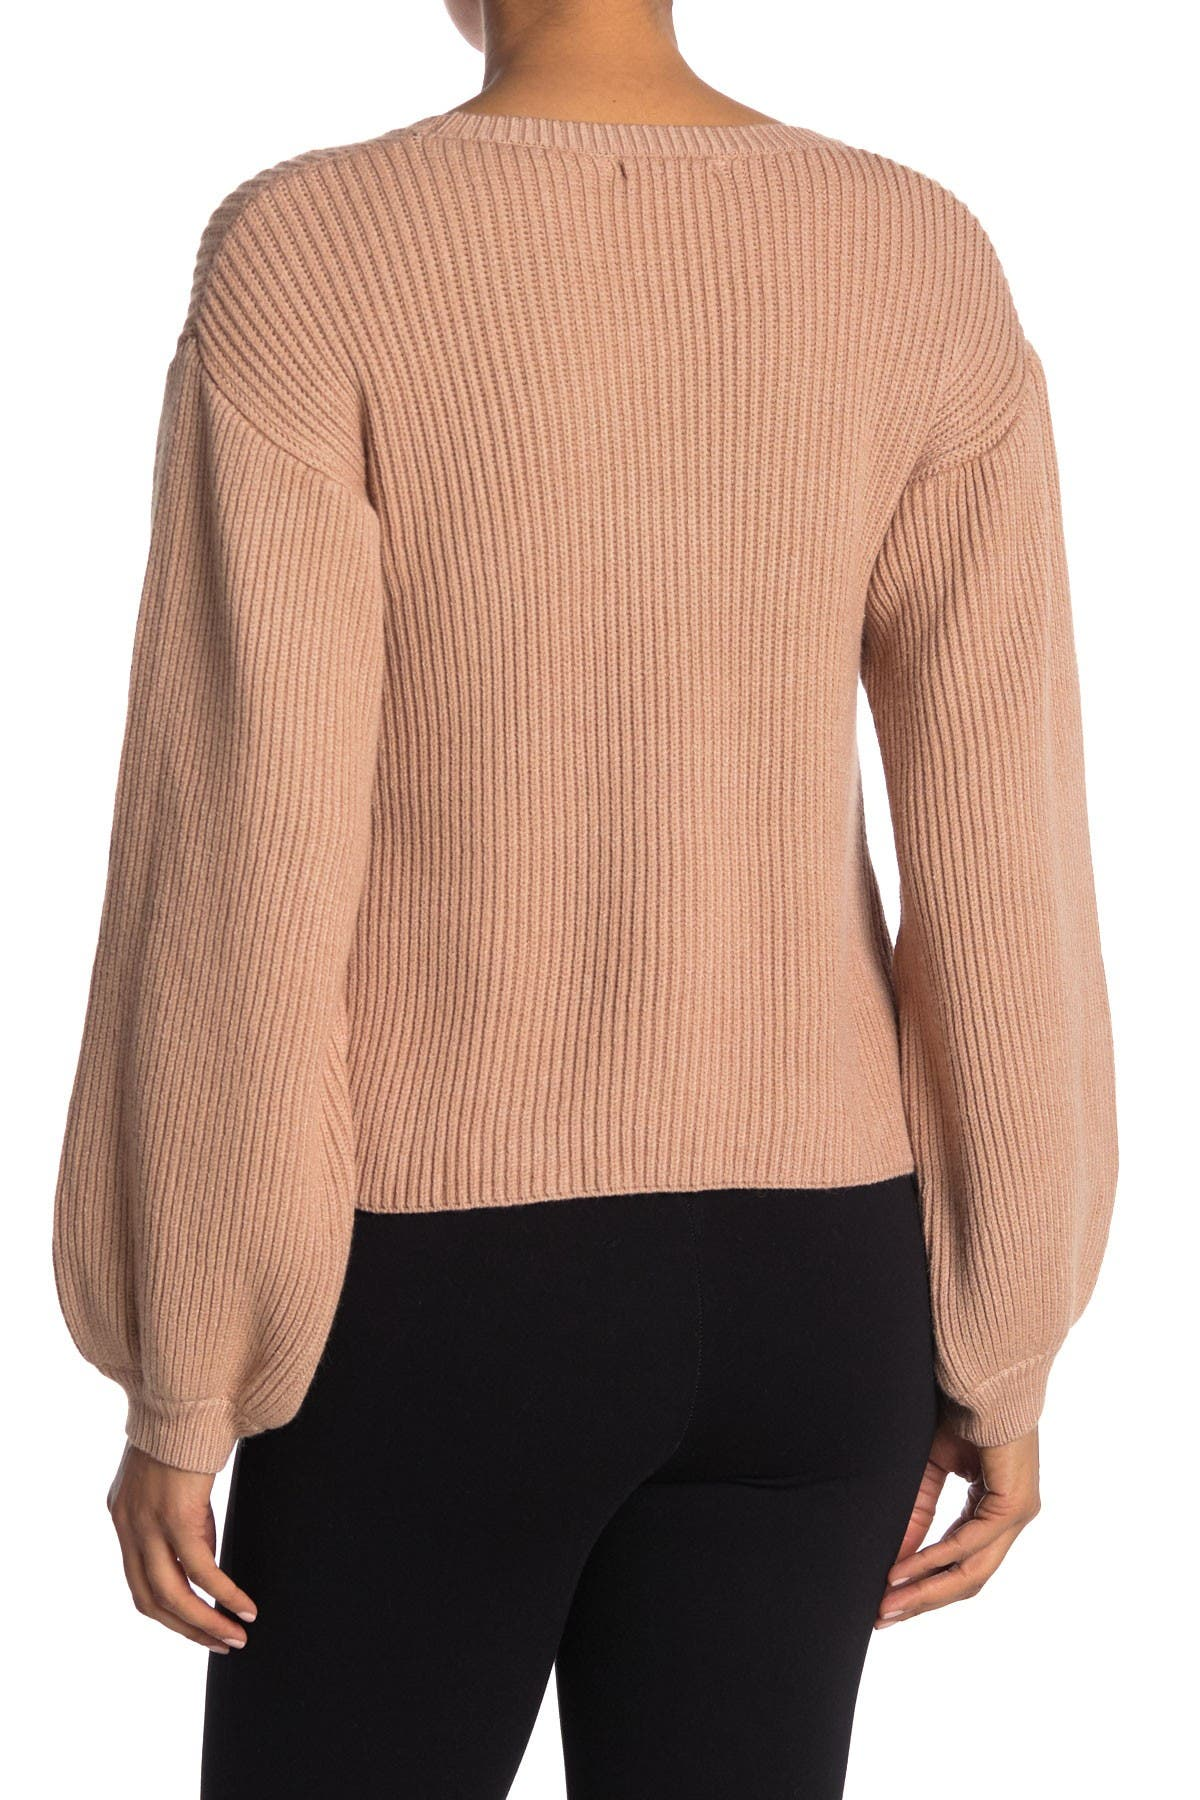 Image of Maisie Peter Bishop Sleeve Sweater